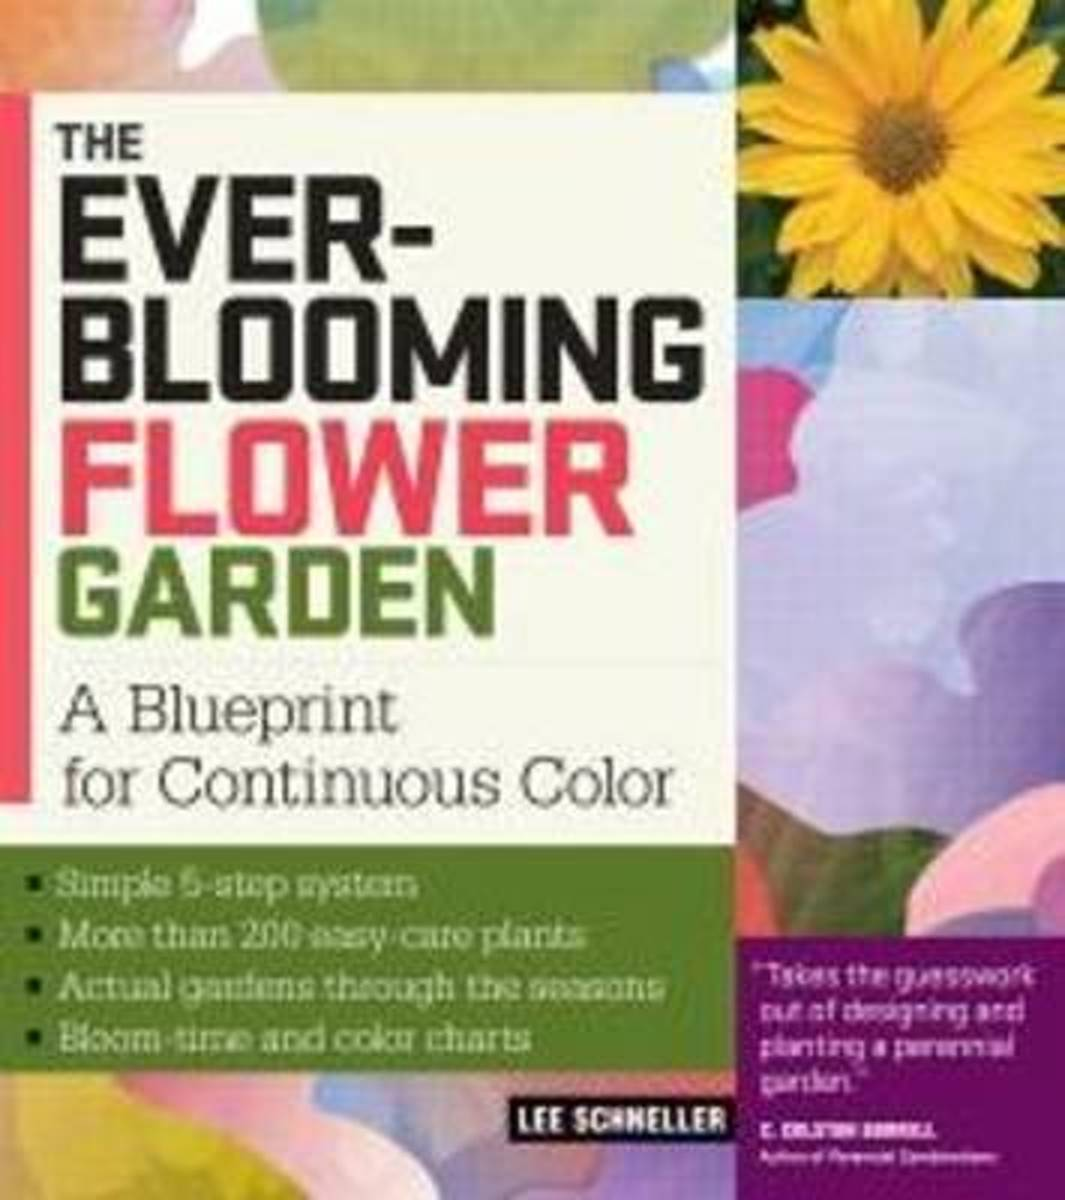 The Ever Blooming Flower Garden